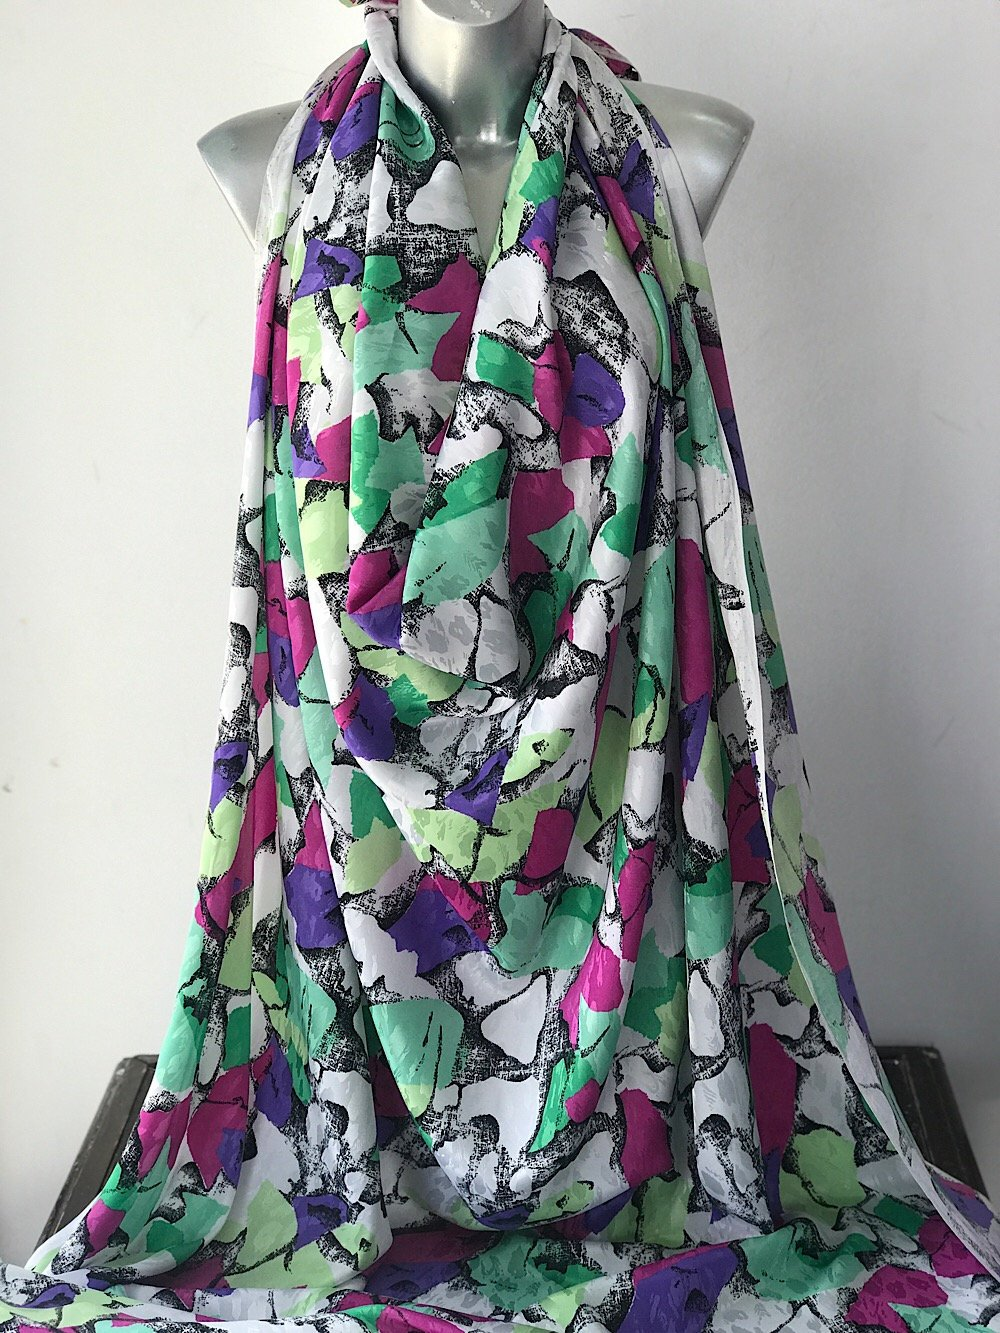 polyester print fabric jacquard base abstract print green purple pink white white 140cm wide